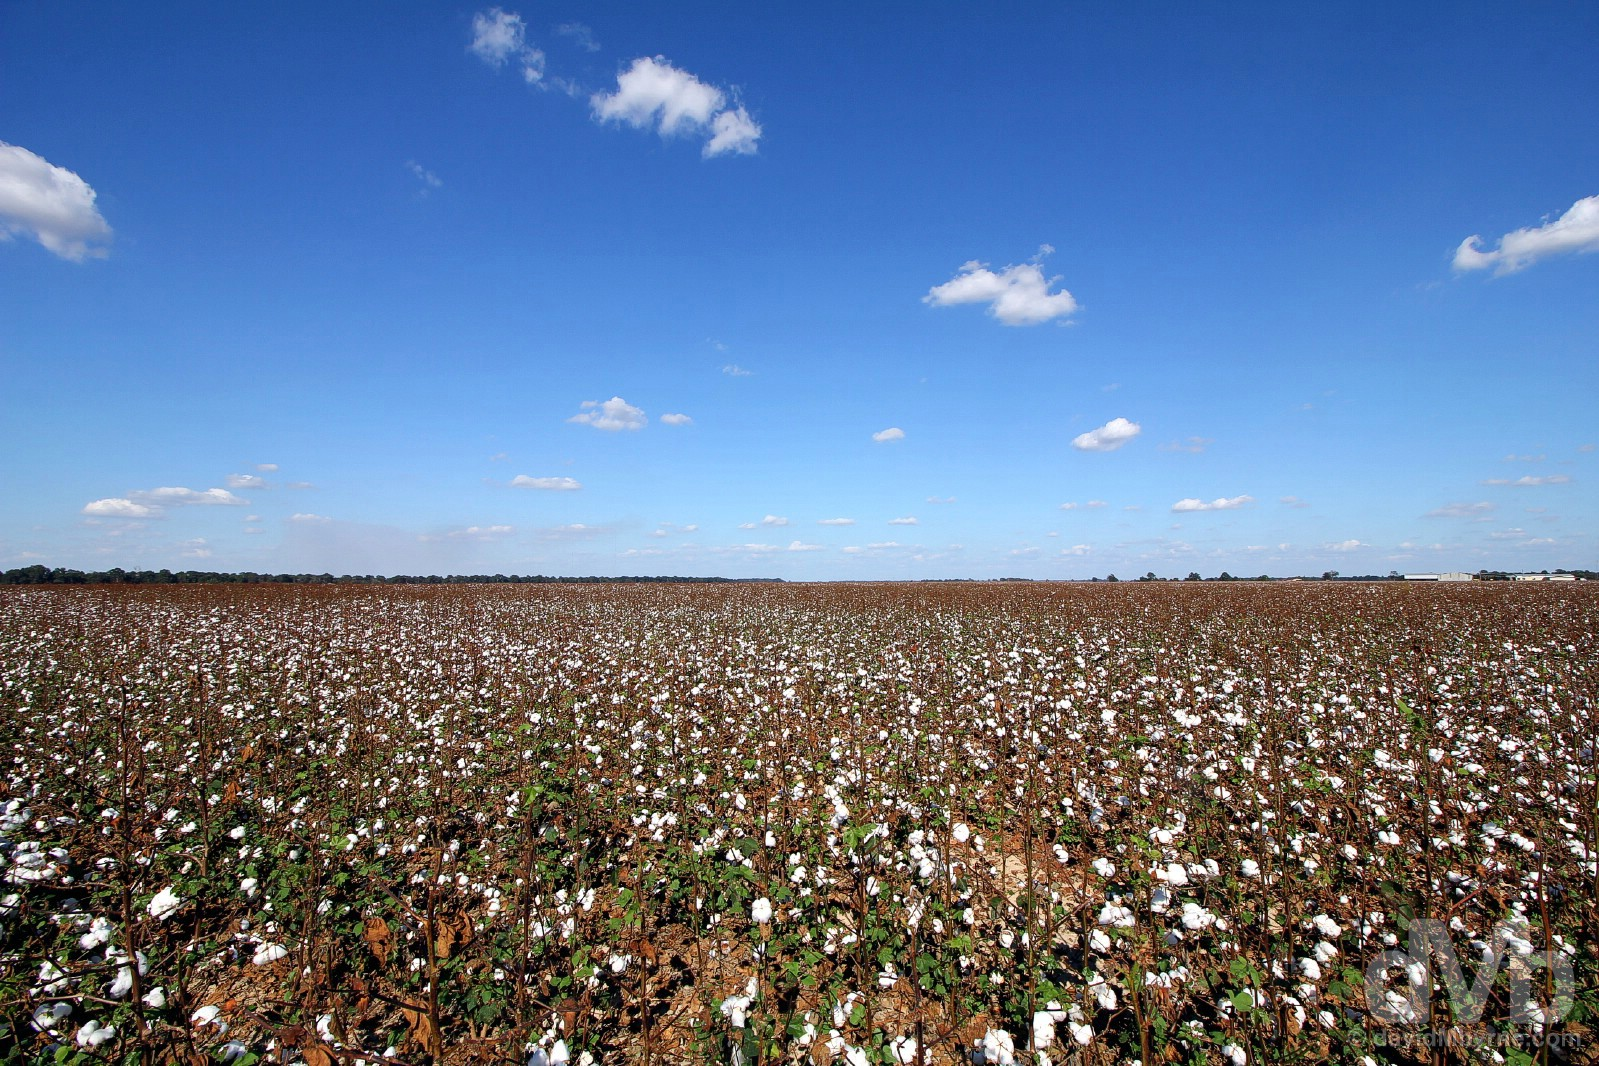 Endless cotton fields of the Mississippi Delta, USA. September 19, 2016.